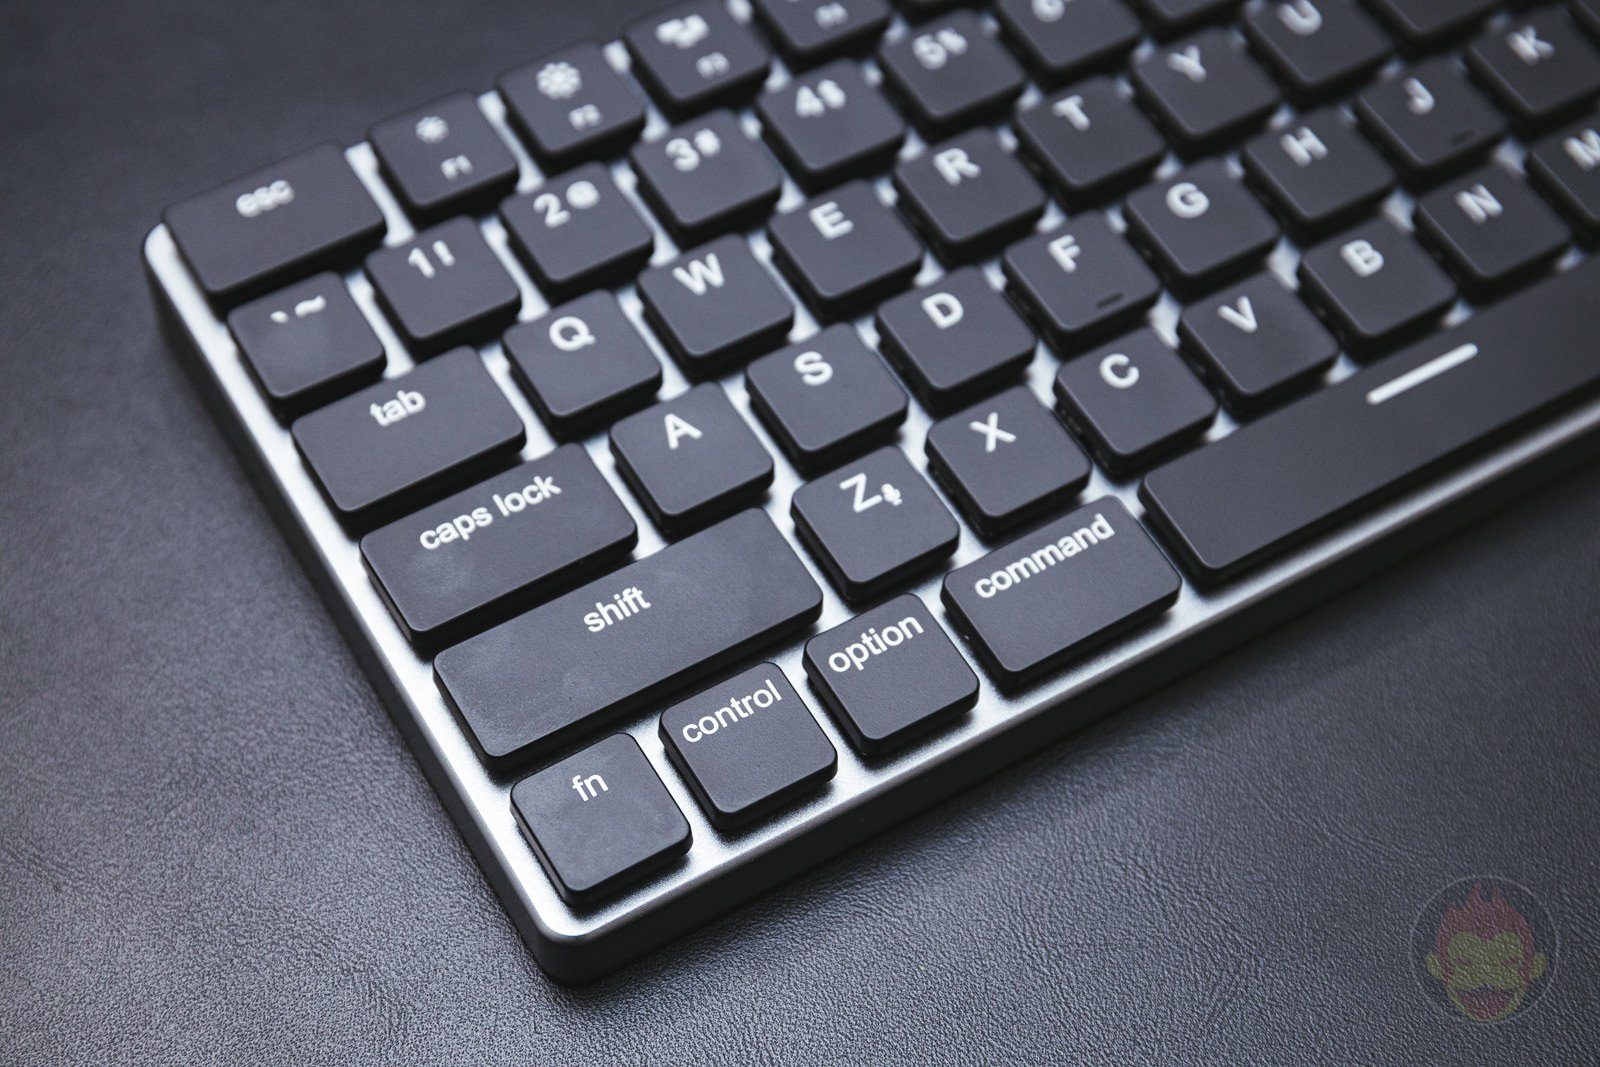 Vinpok-Taptek-Wireless-Keyboard-Review-2-07.jpg